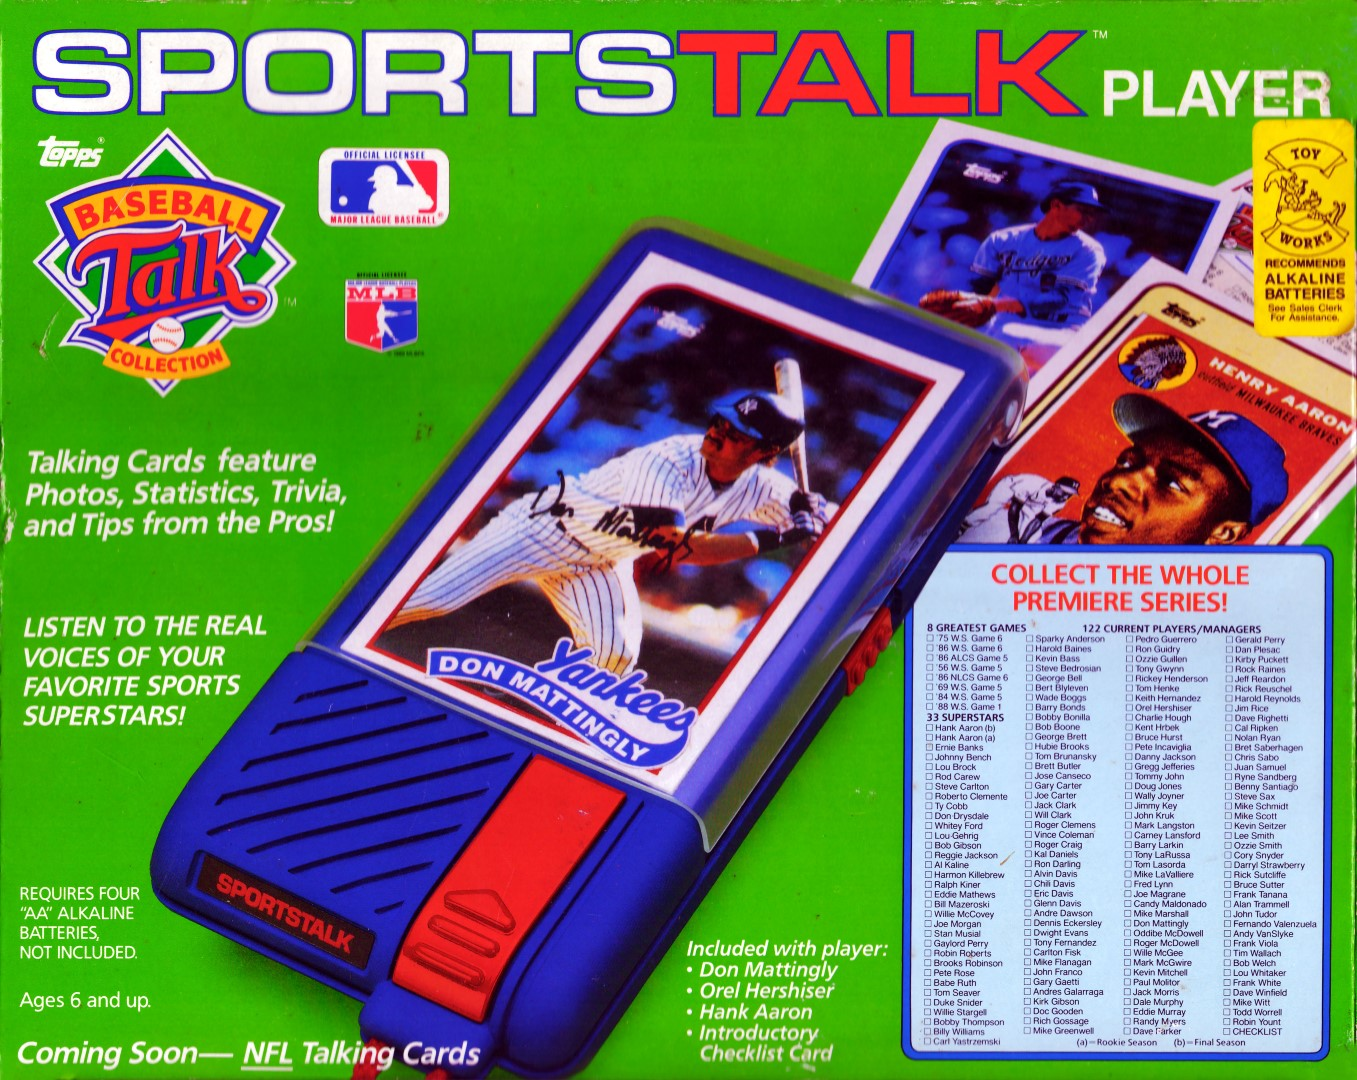 Topps MLB Sports Talk Player Box